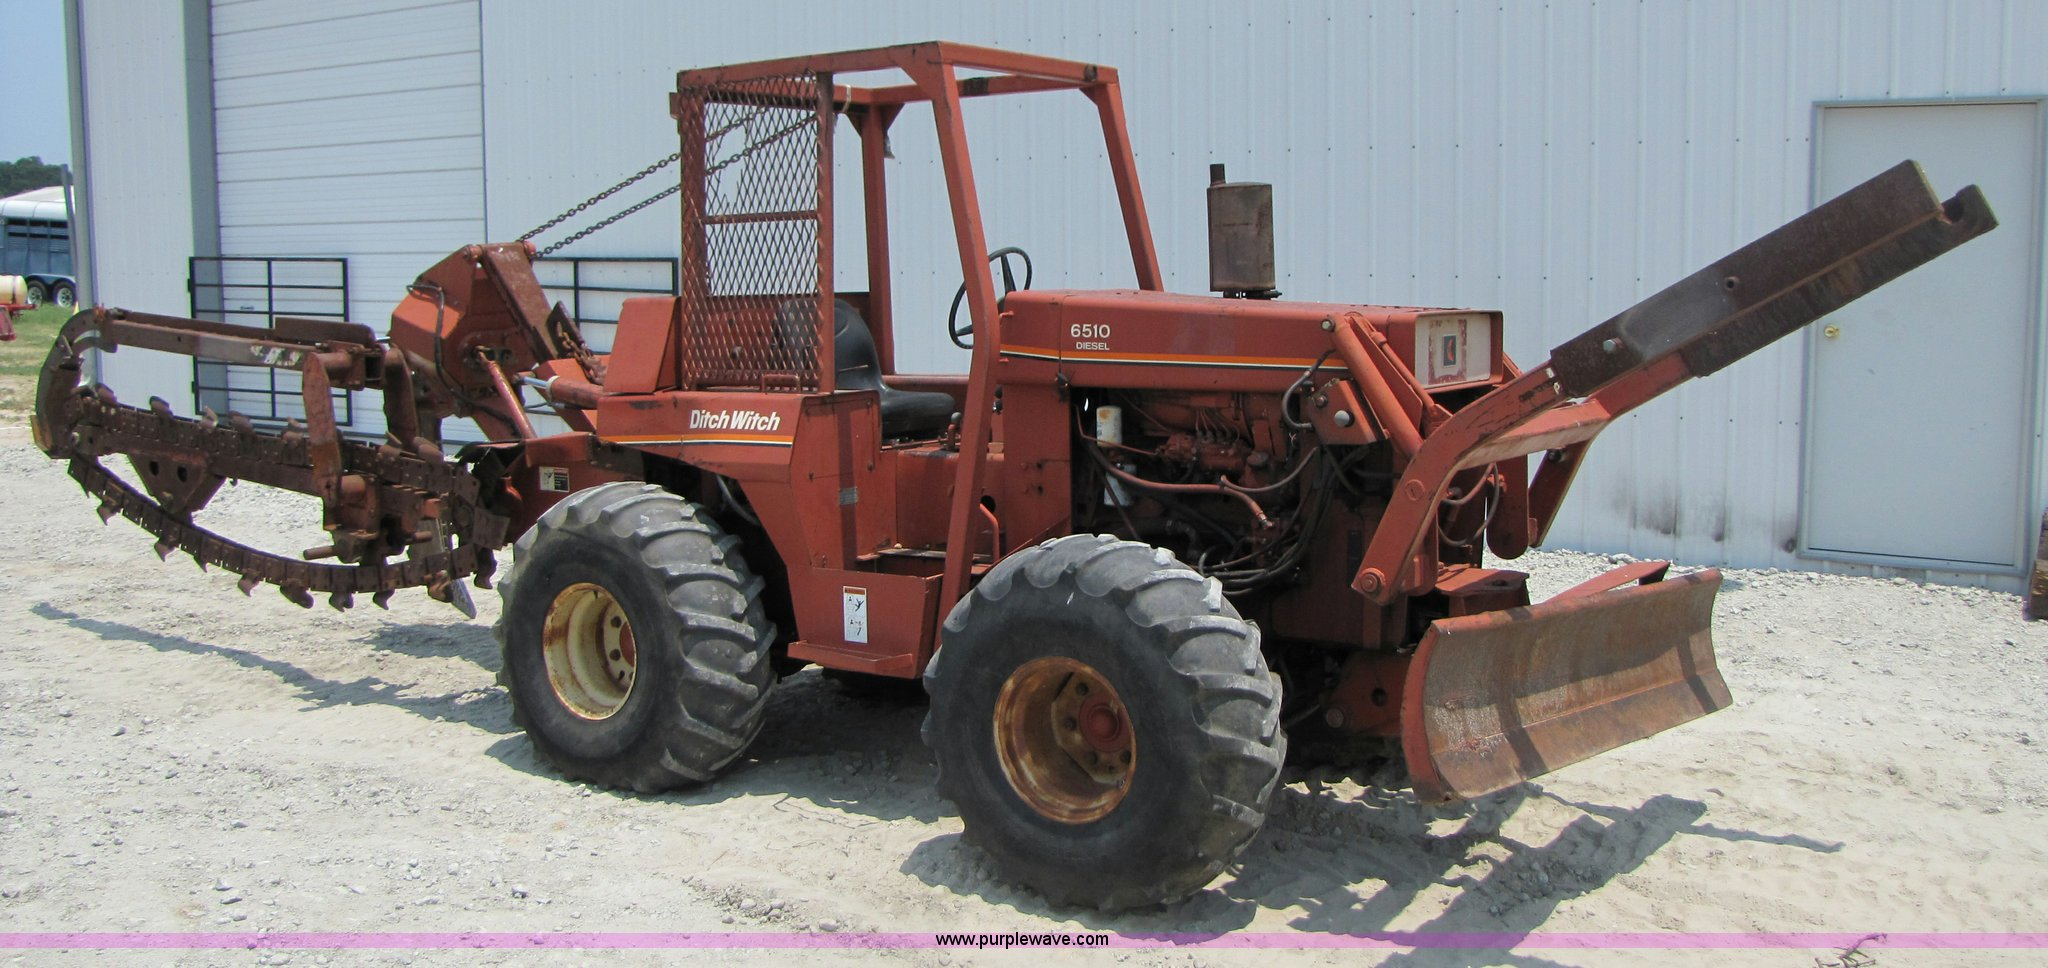 ditch witch 6510 trencher with cable plow item 3458 sold rh purplewave com Ditch Witch 6510 Specs Used Trencher Parts